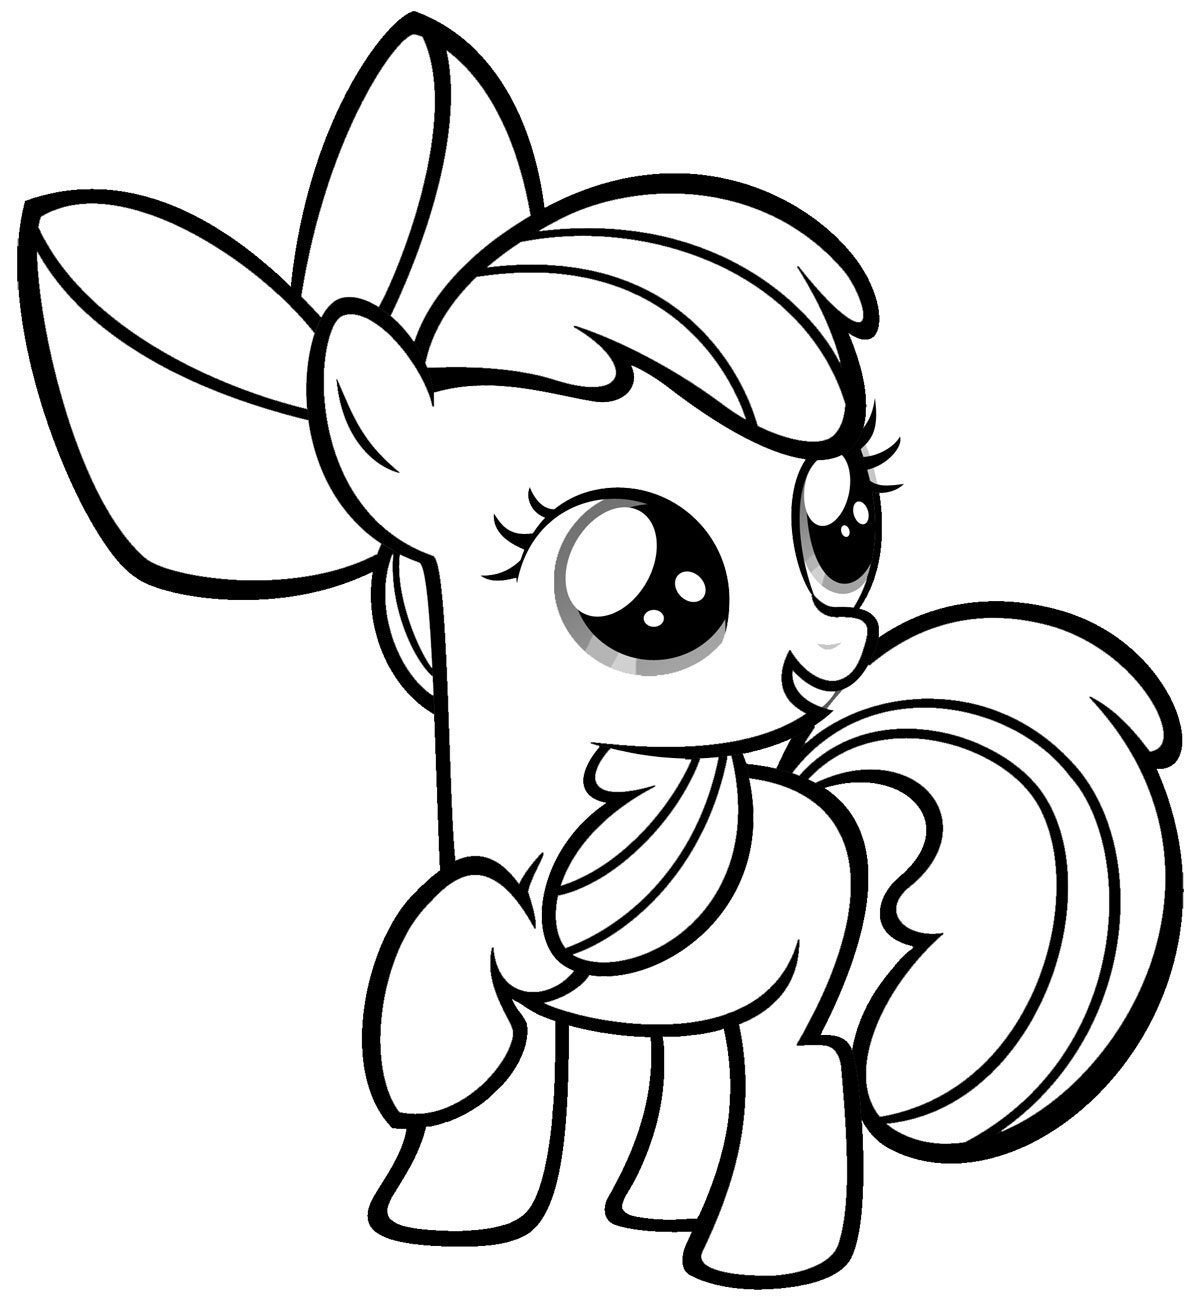 My little pony coloring pages for kids free - Download Free Printable My Little Pony Coloring Pages For Kids